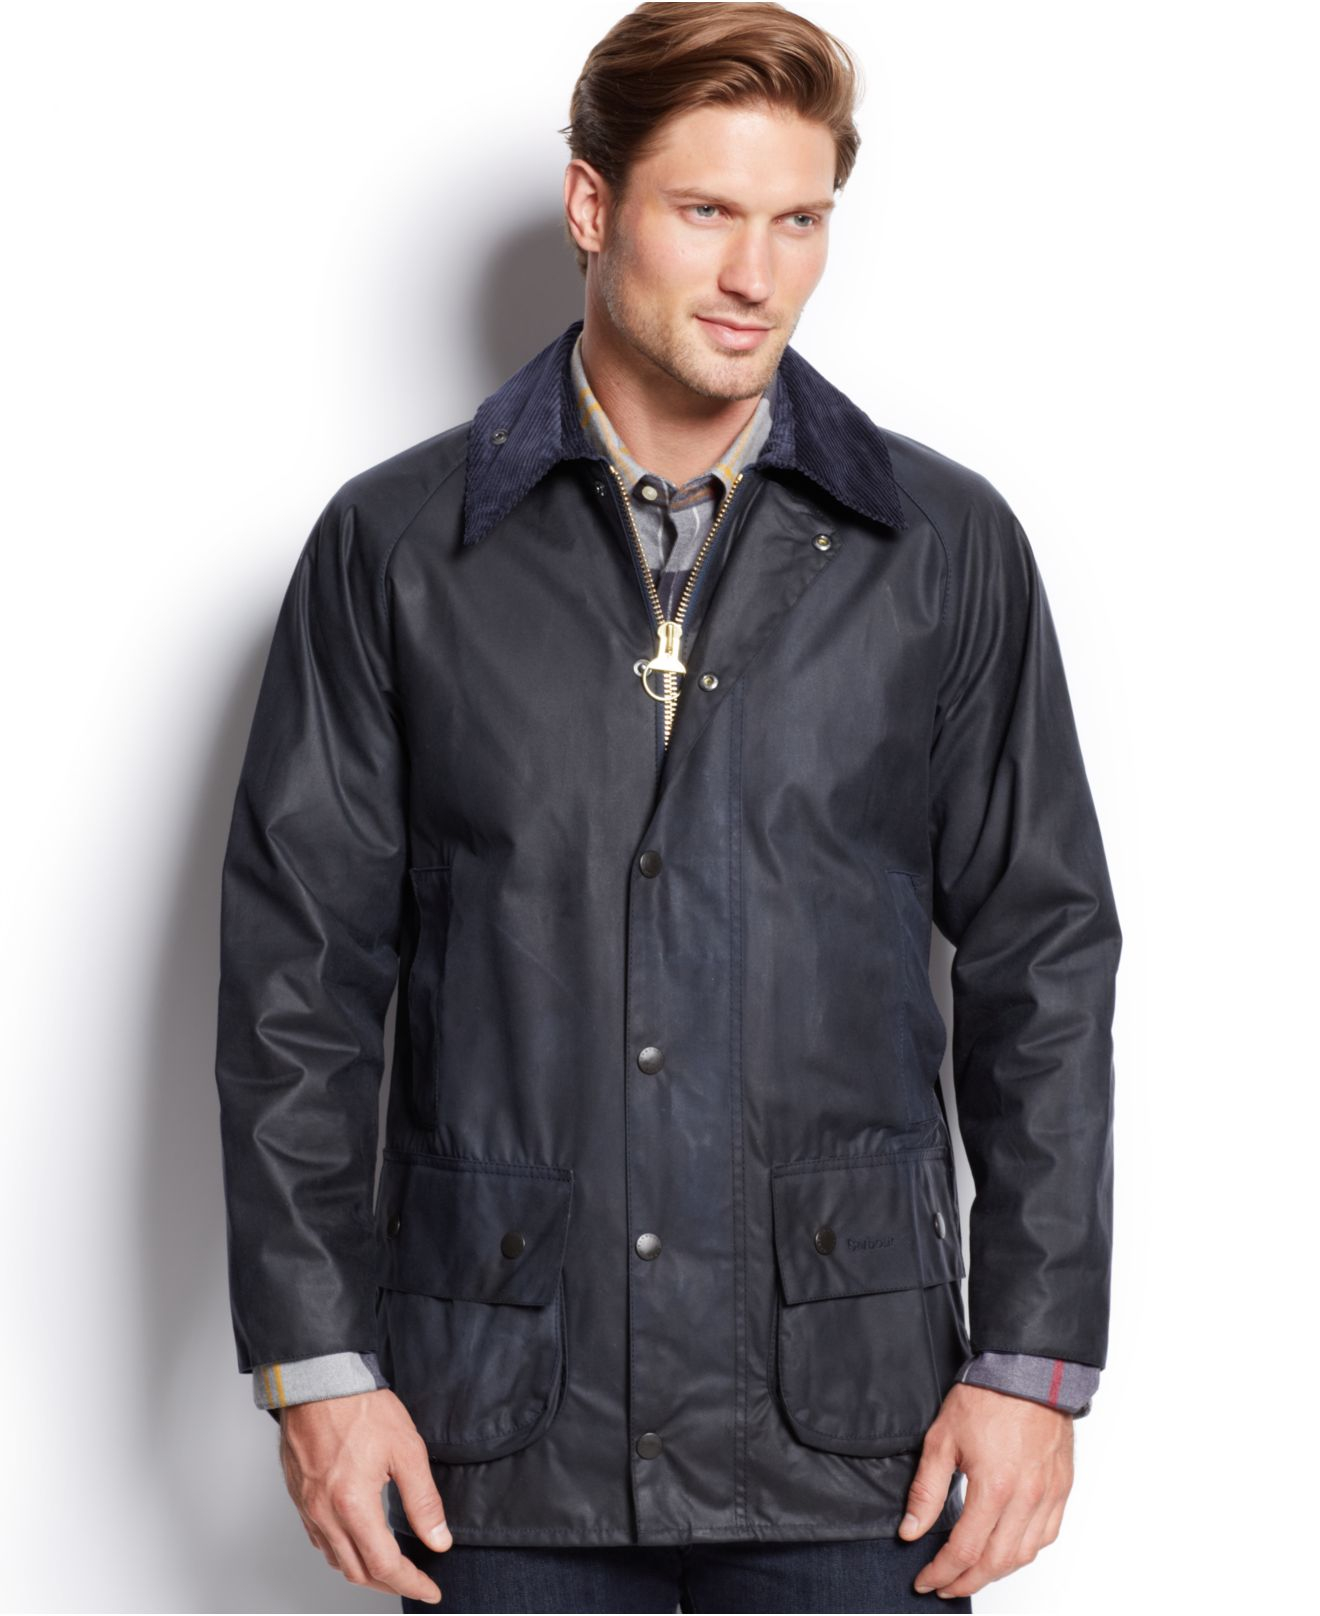 how to clean wax resin jackets